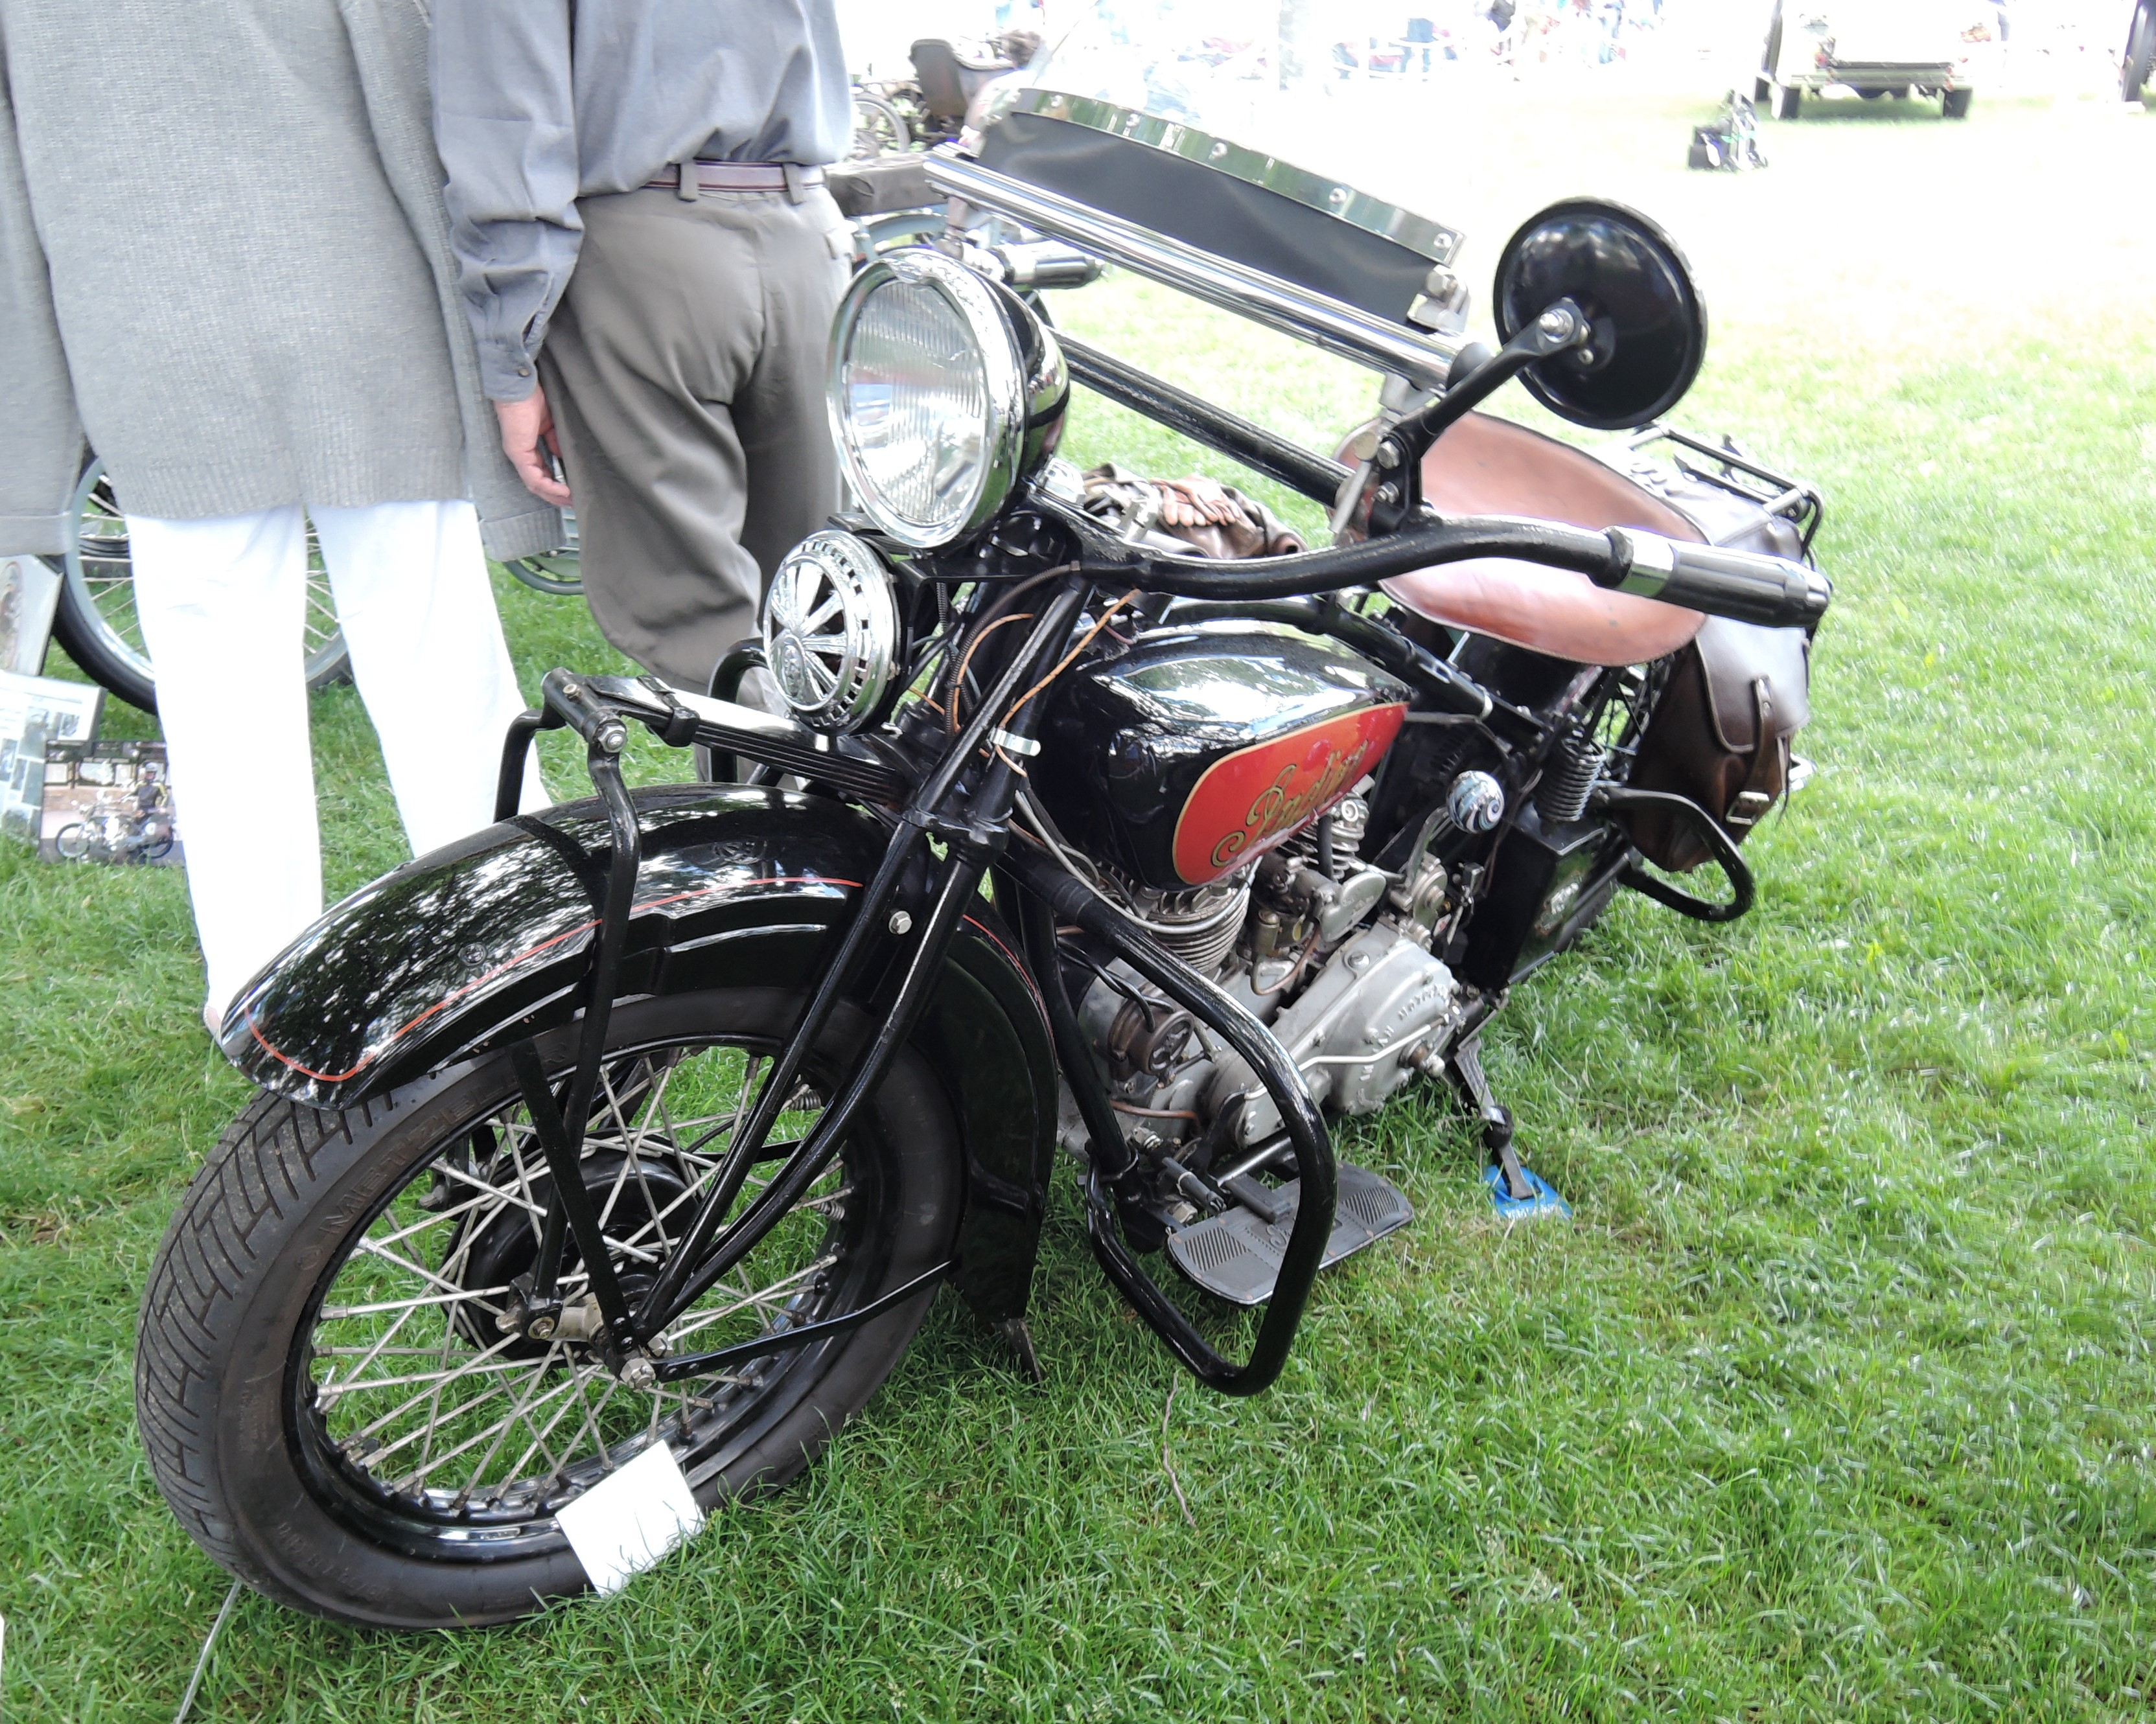 red/black 1931 Indian 101 Scout - Greenwich Concours d'Elegance 2017